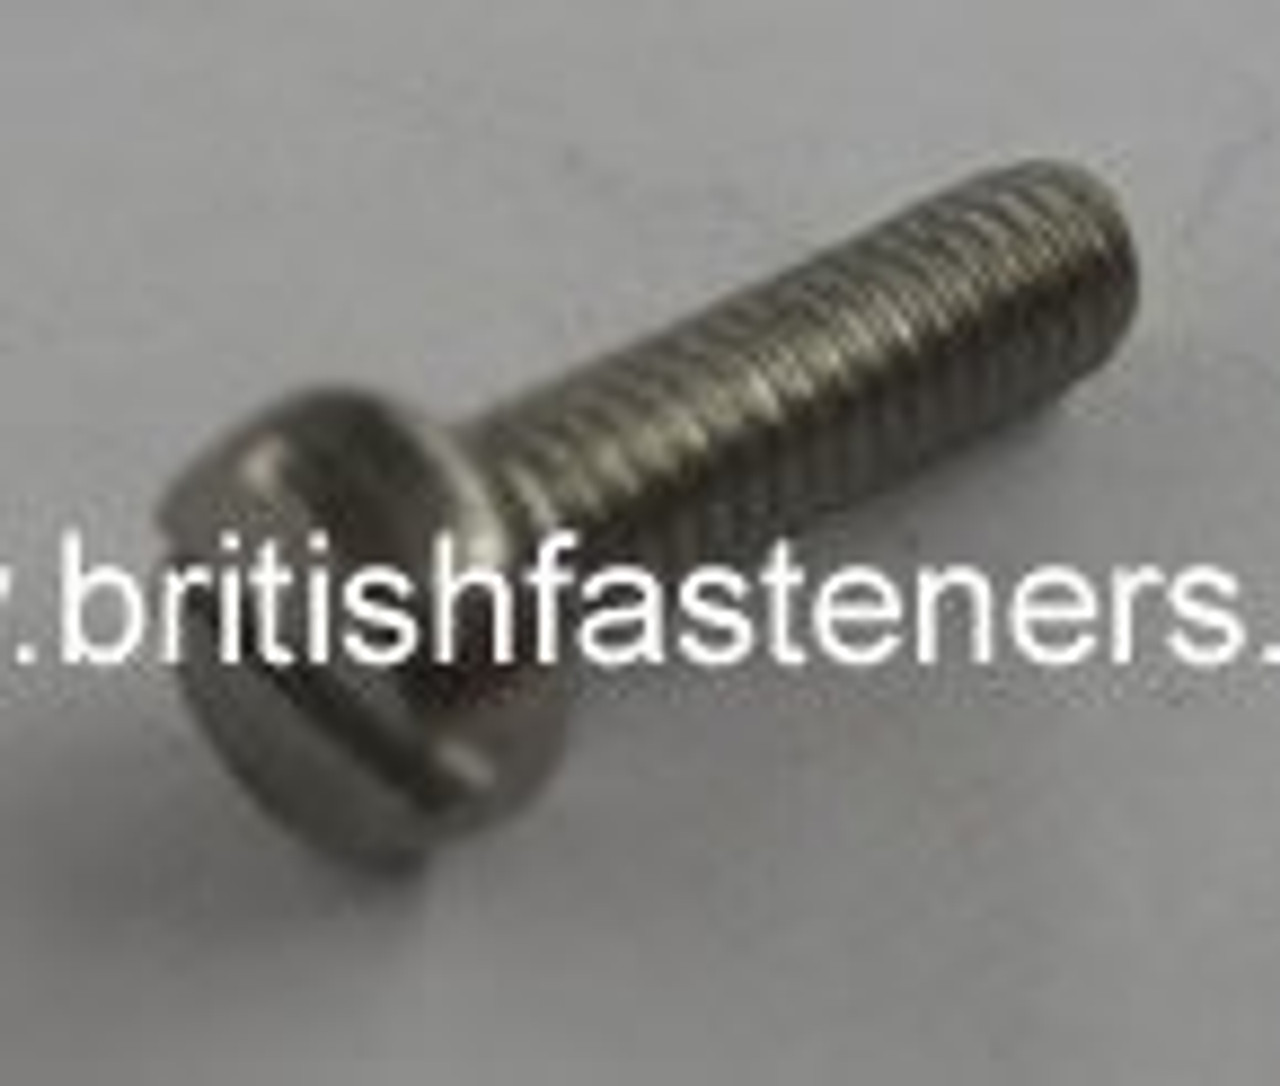 "1 BA x 1"" STAINLESS CHEESEHEAD SCREW - (6608)"